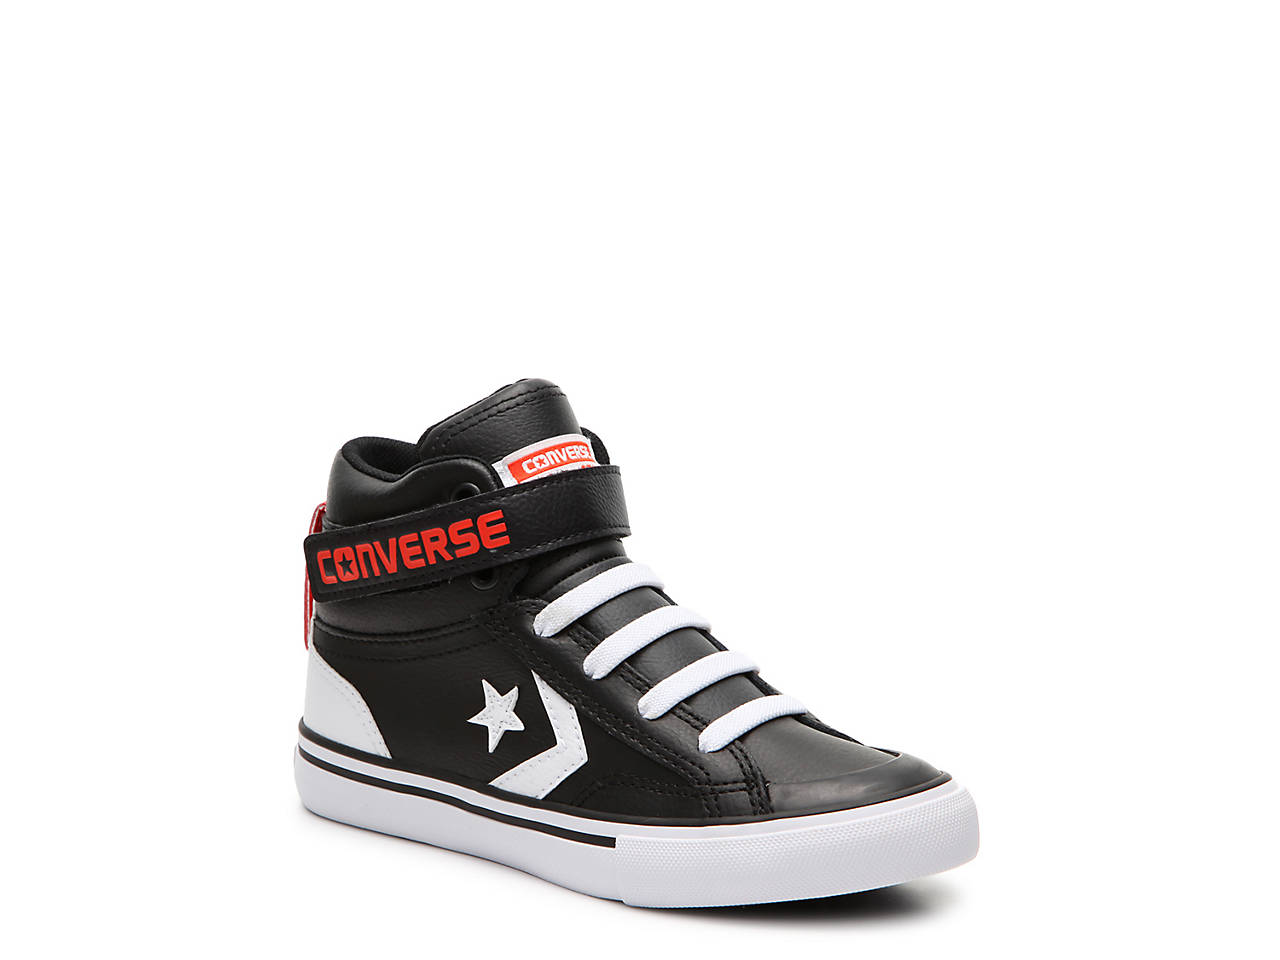 8bbe1e3d9bbdba Converse Chuck Taylor All Star Pro Blaze Toddler   Youth High-Top Sneaker  Kids Shoes